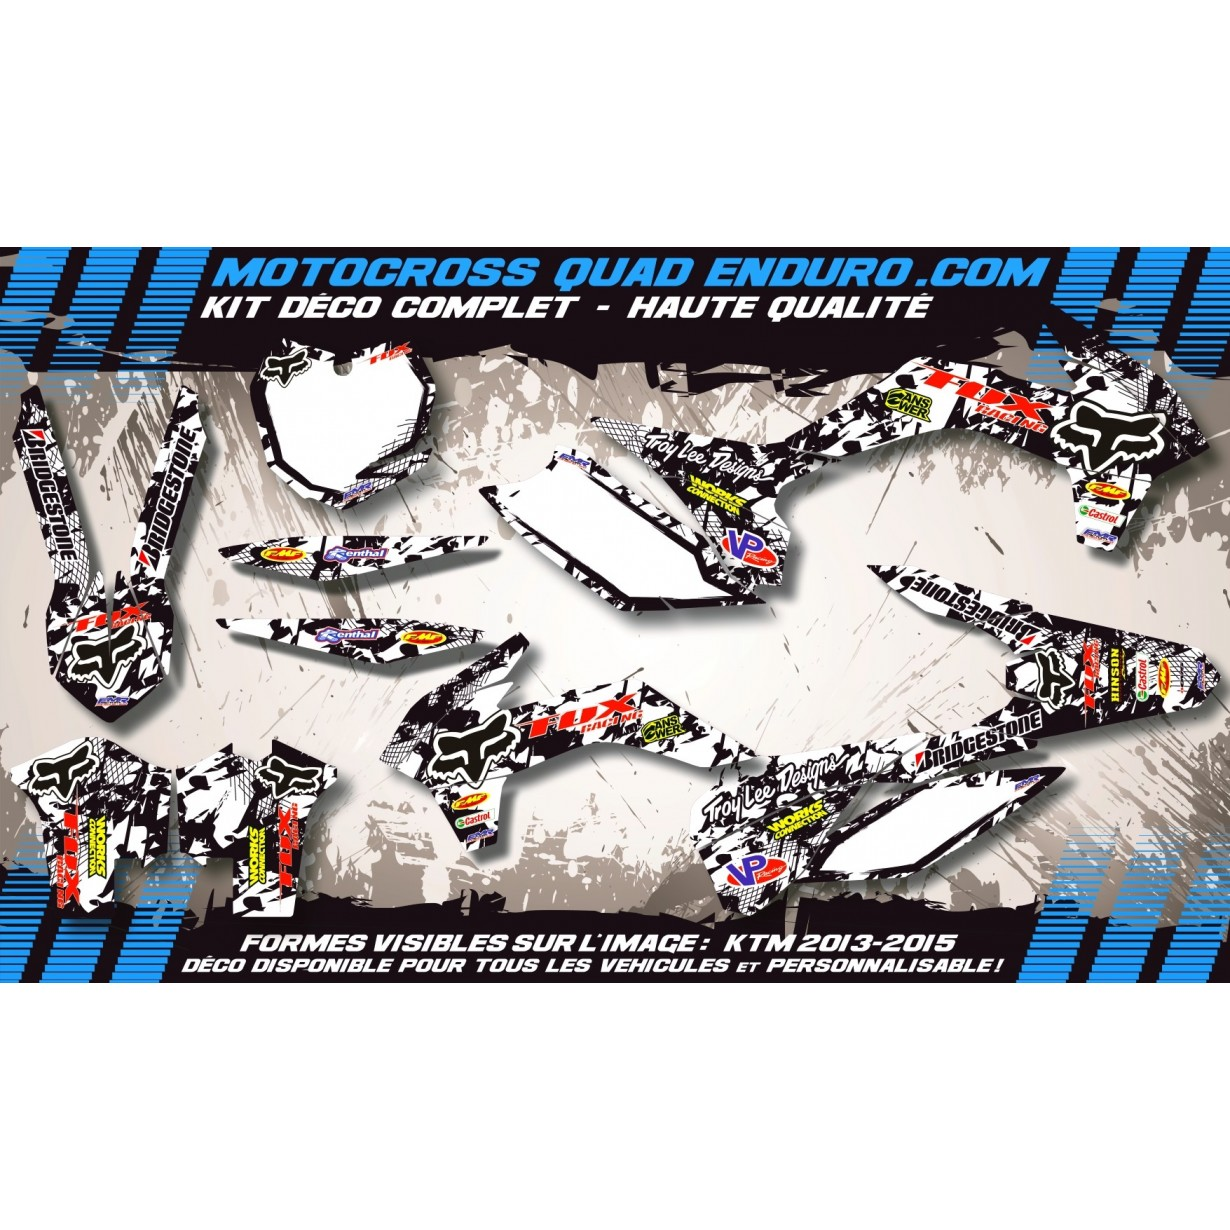 KIT DÉCO Perso TC 250 à 510 05-07 FOX MA9F